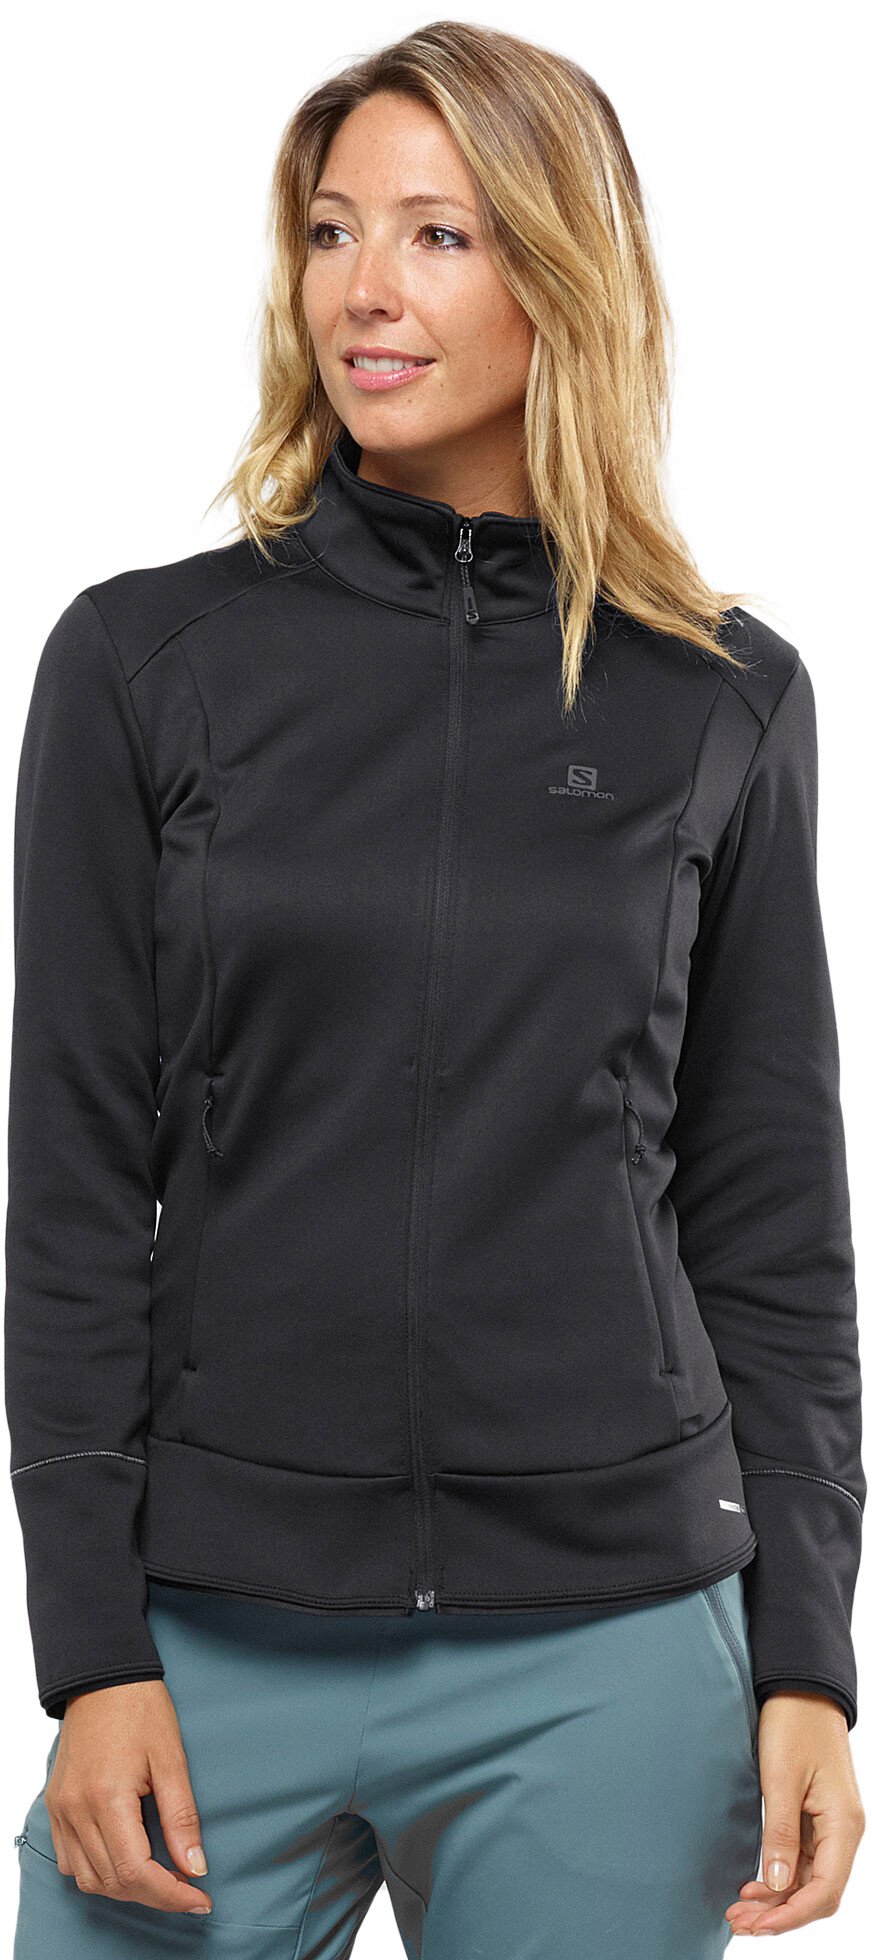 Salomon Discovery Full Zip Midlayer Damen black | campz.ch